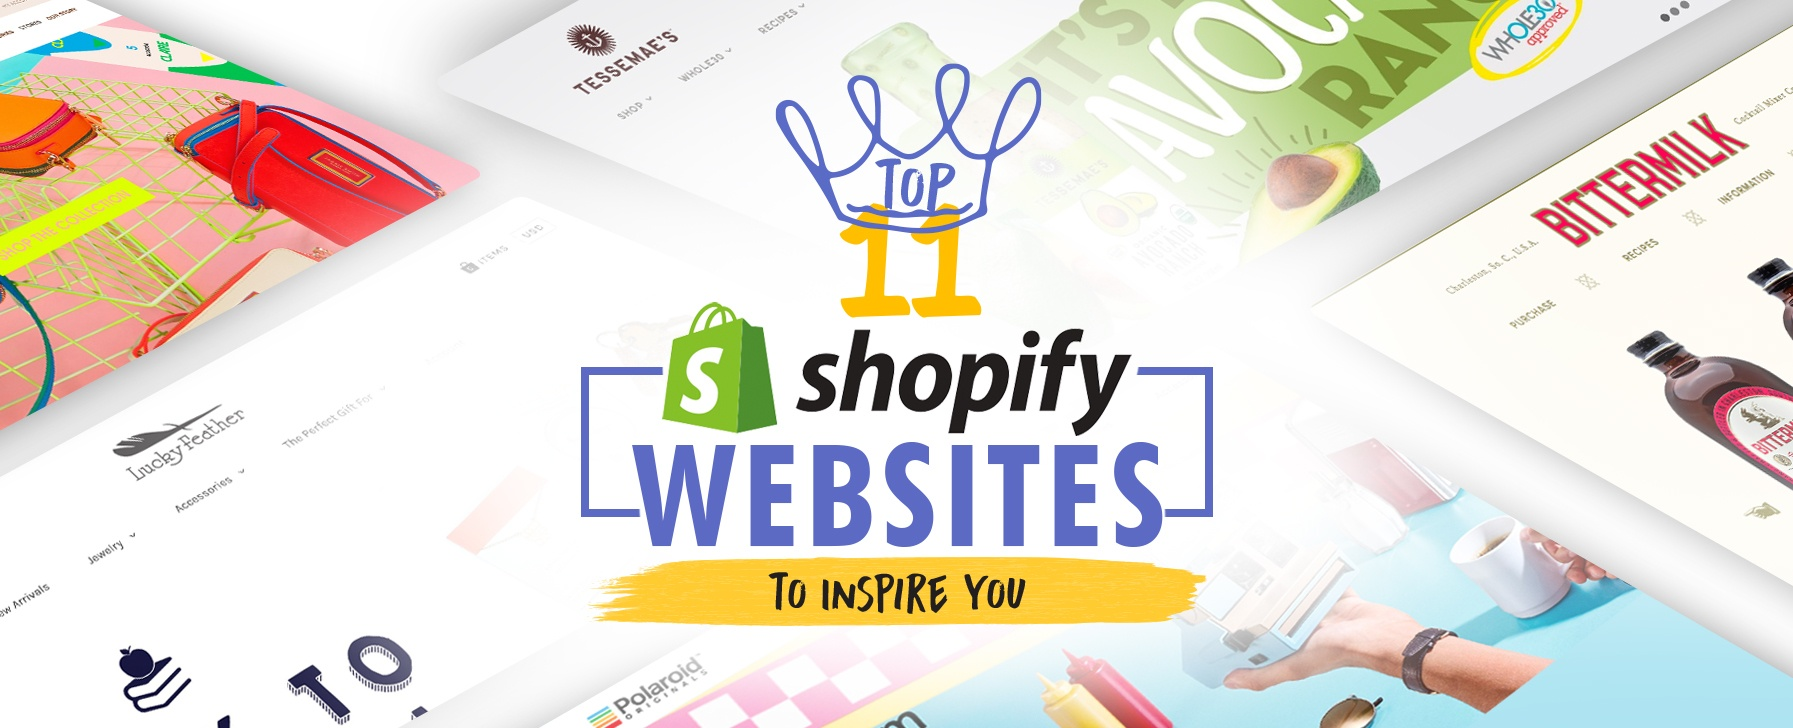 Top-Shopify-Websites